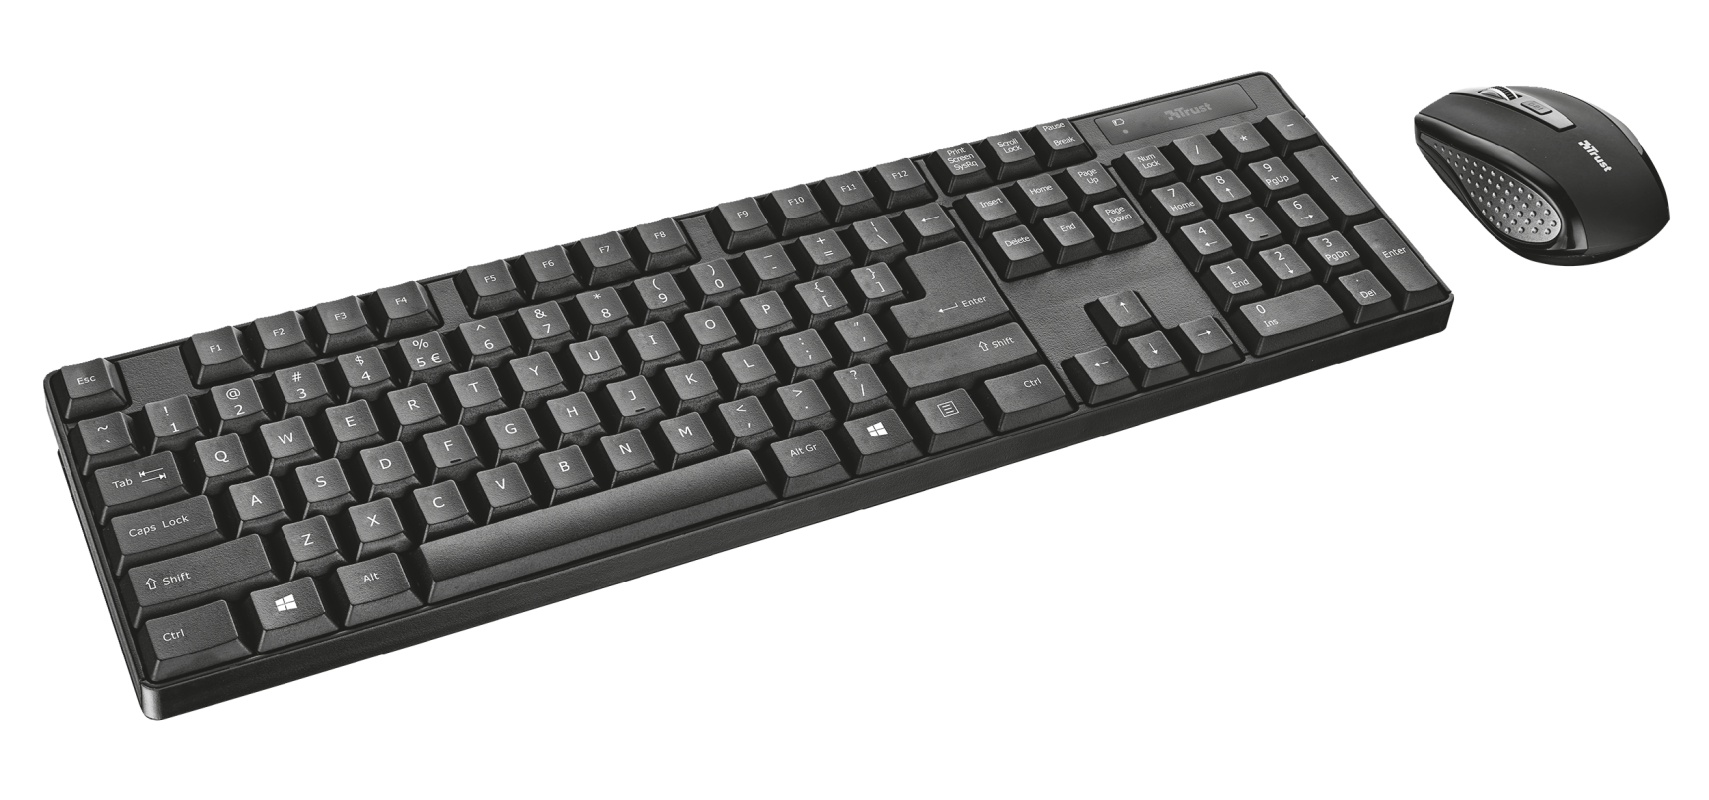 Ximo Wireless Keyboard with mouse-Visual